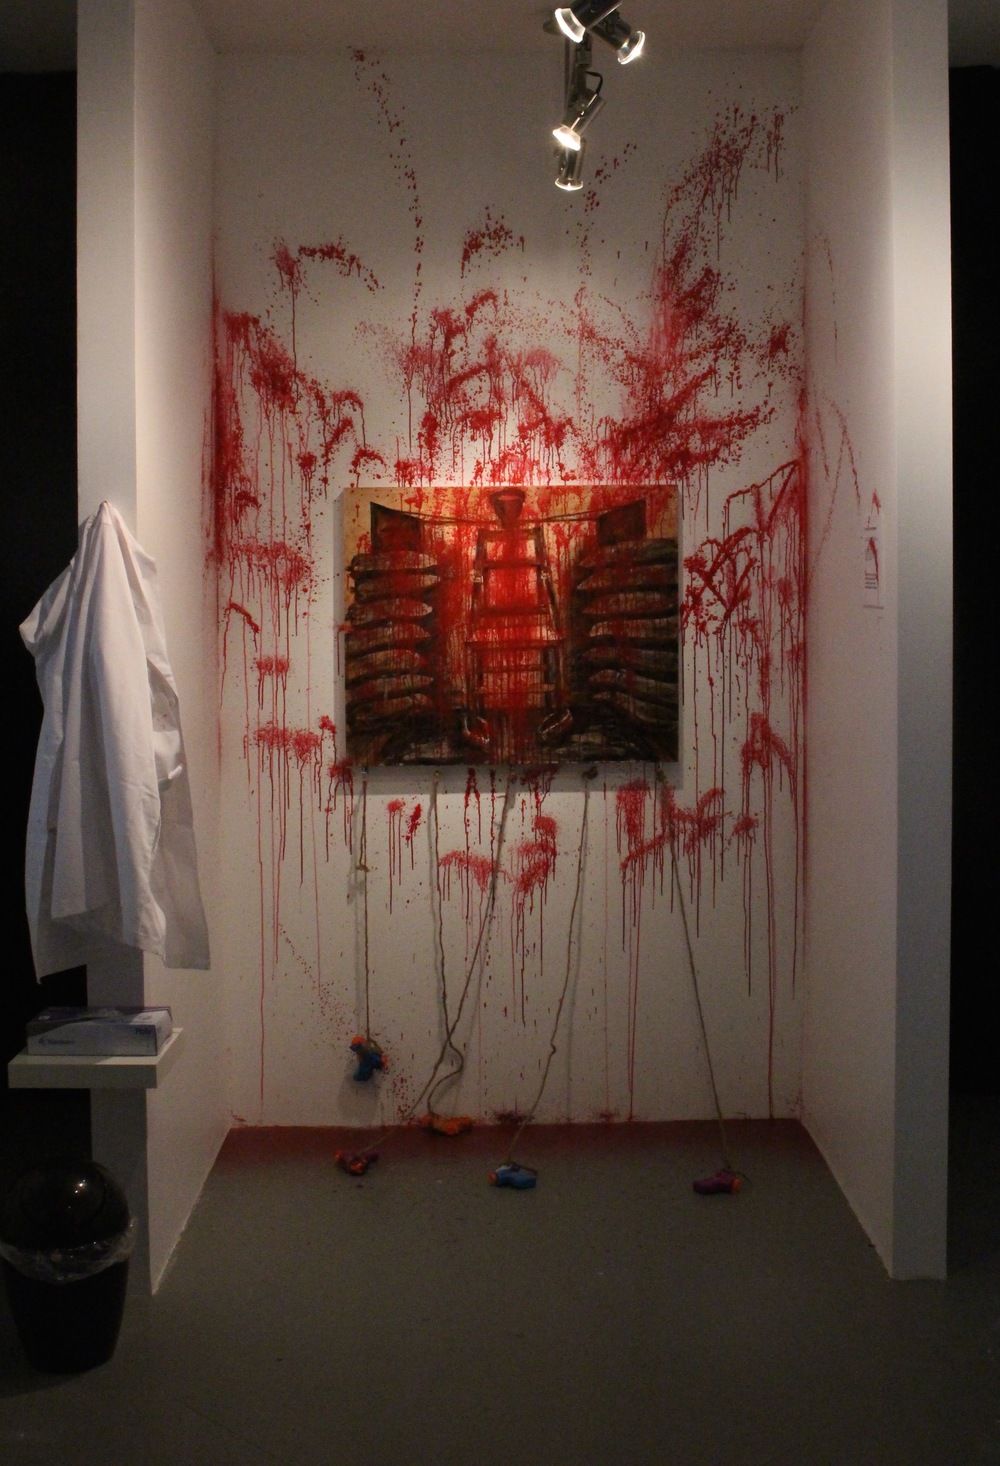 Utah Execution Chamber - Bloodwork (1)